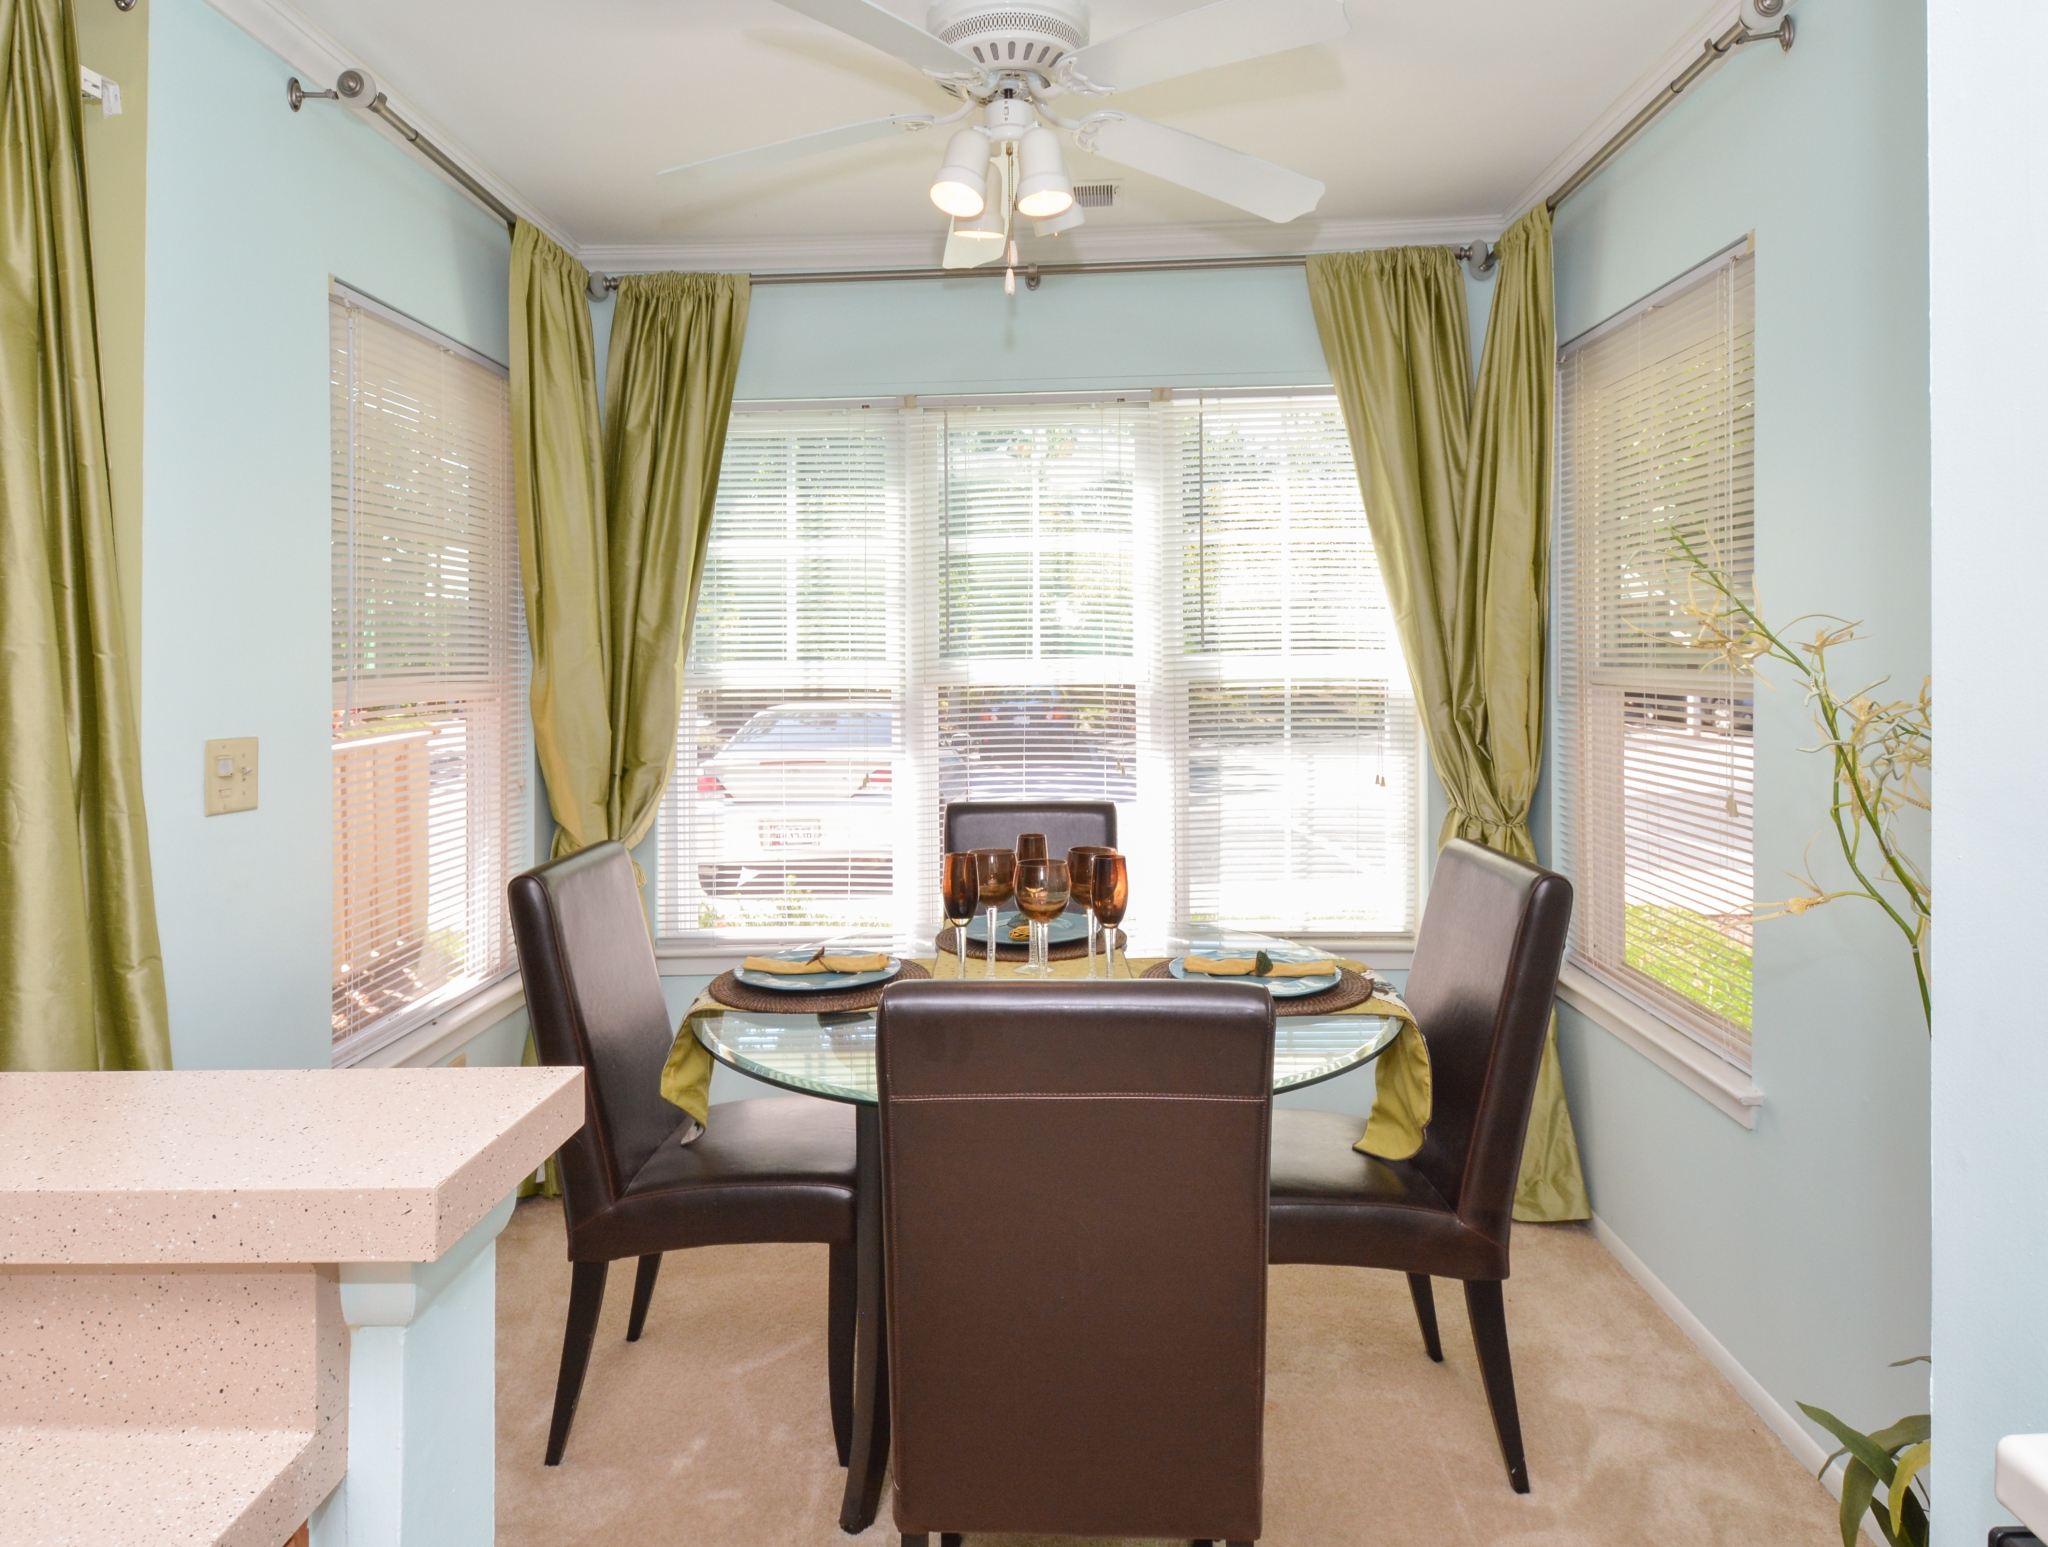 Spacious Living Area | Apartments Homes for rent in Laurel, MD | Spring House Apartments